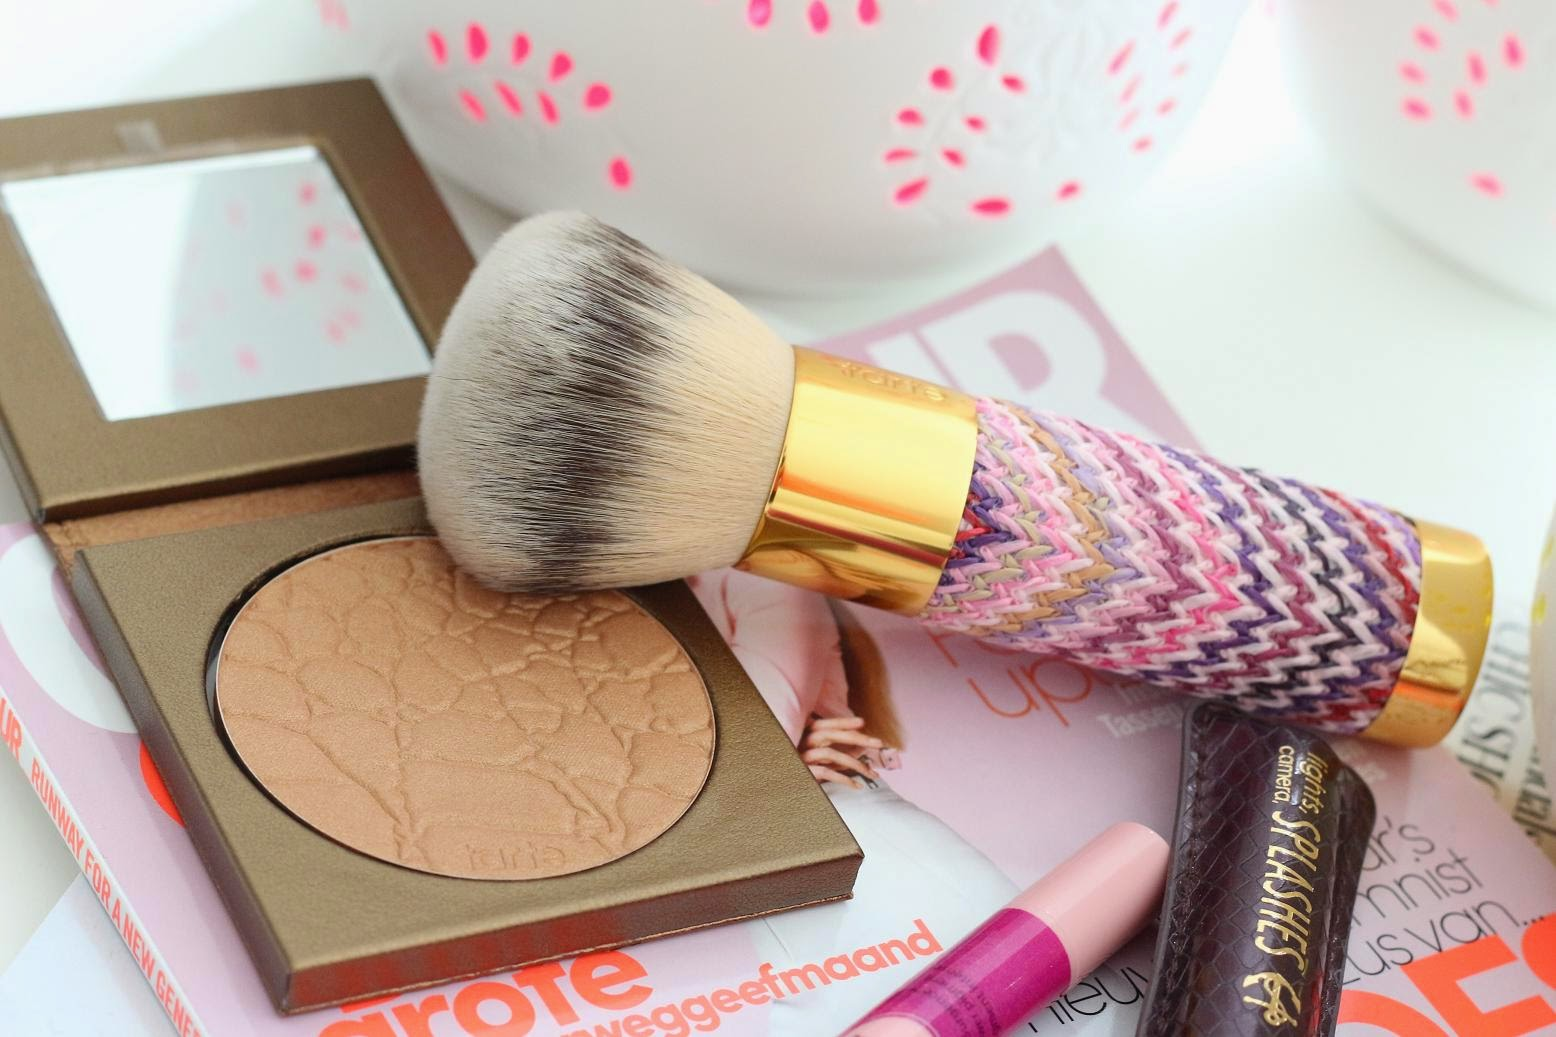 Park Ave Princess Amazonian Clay Bronzer